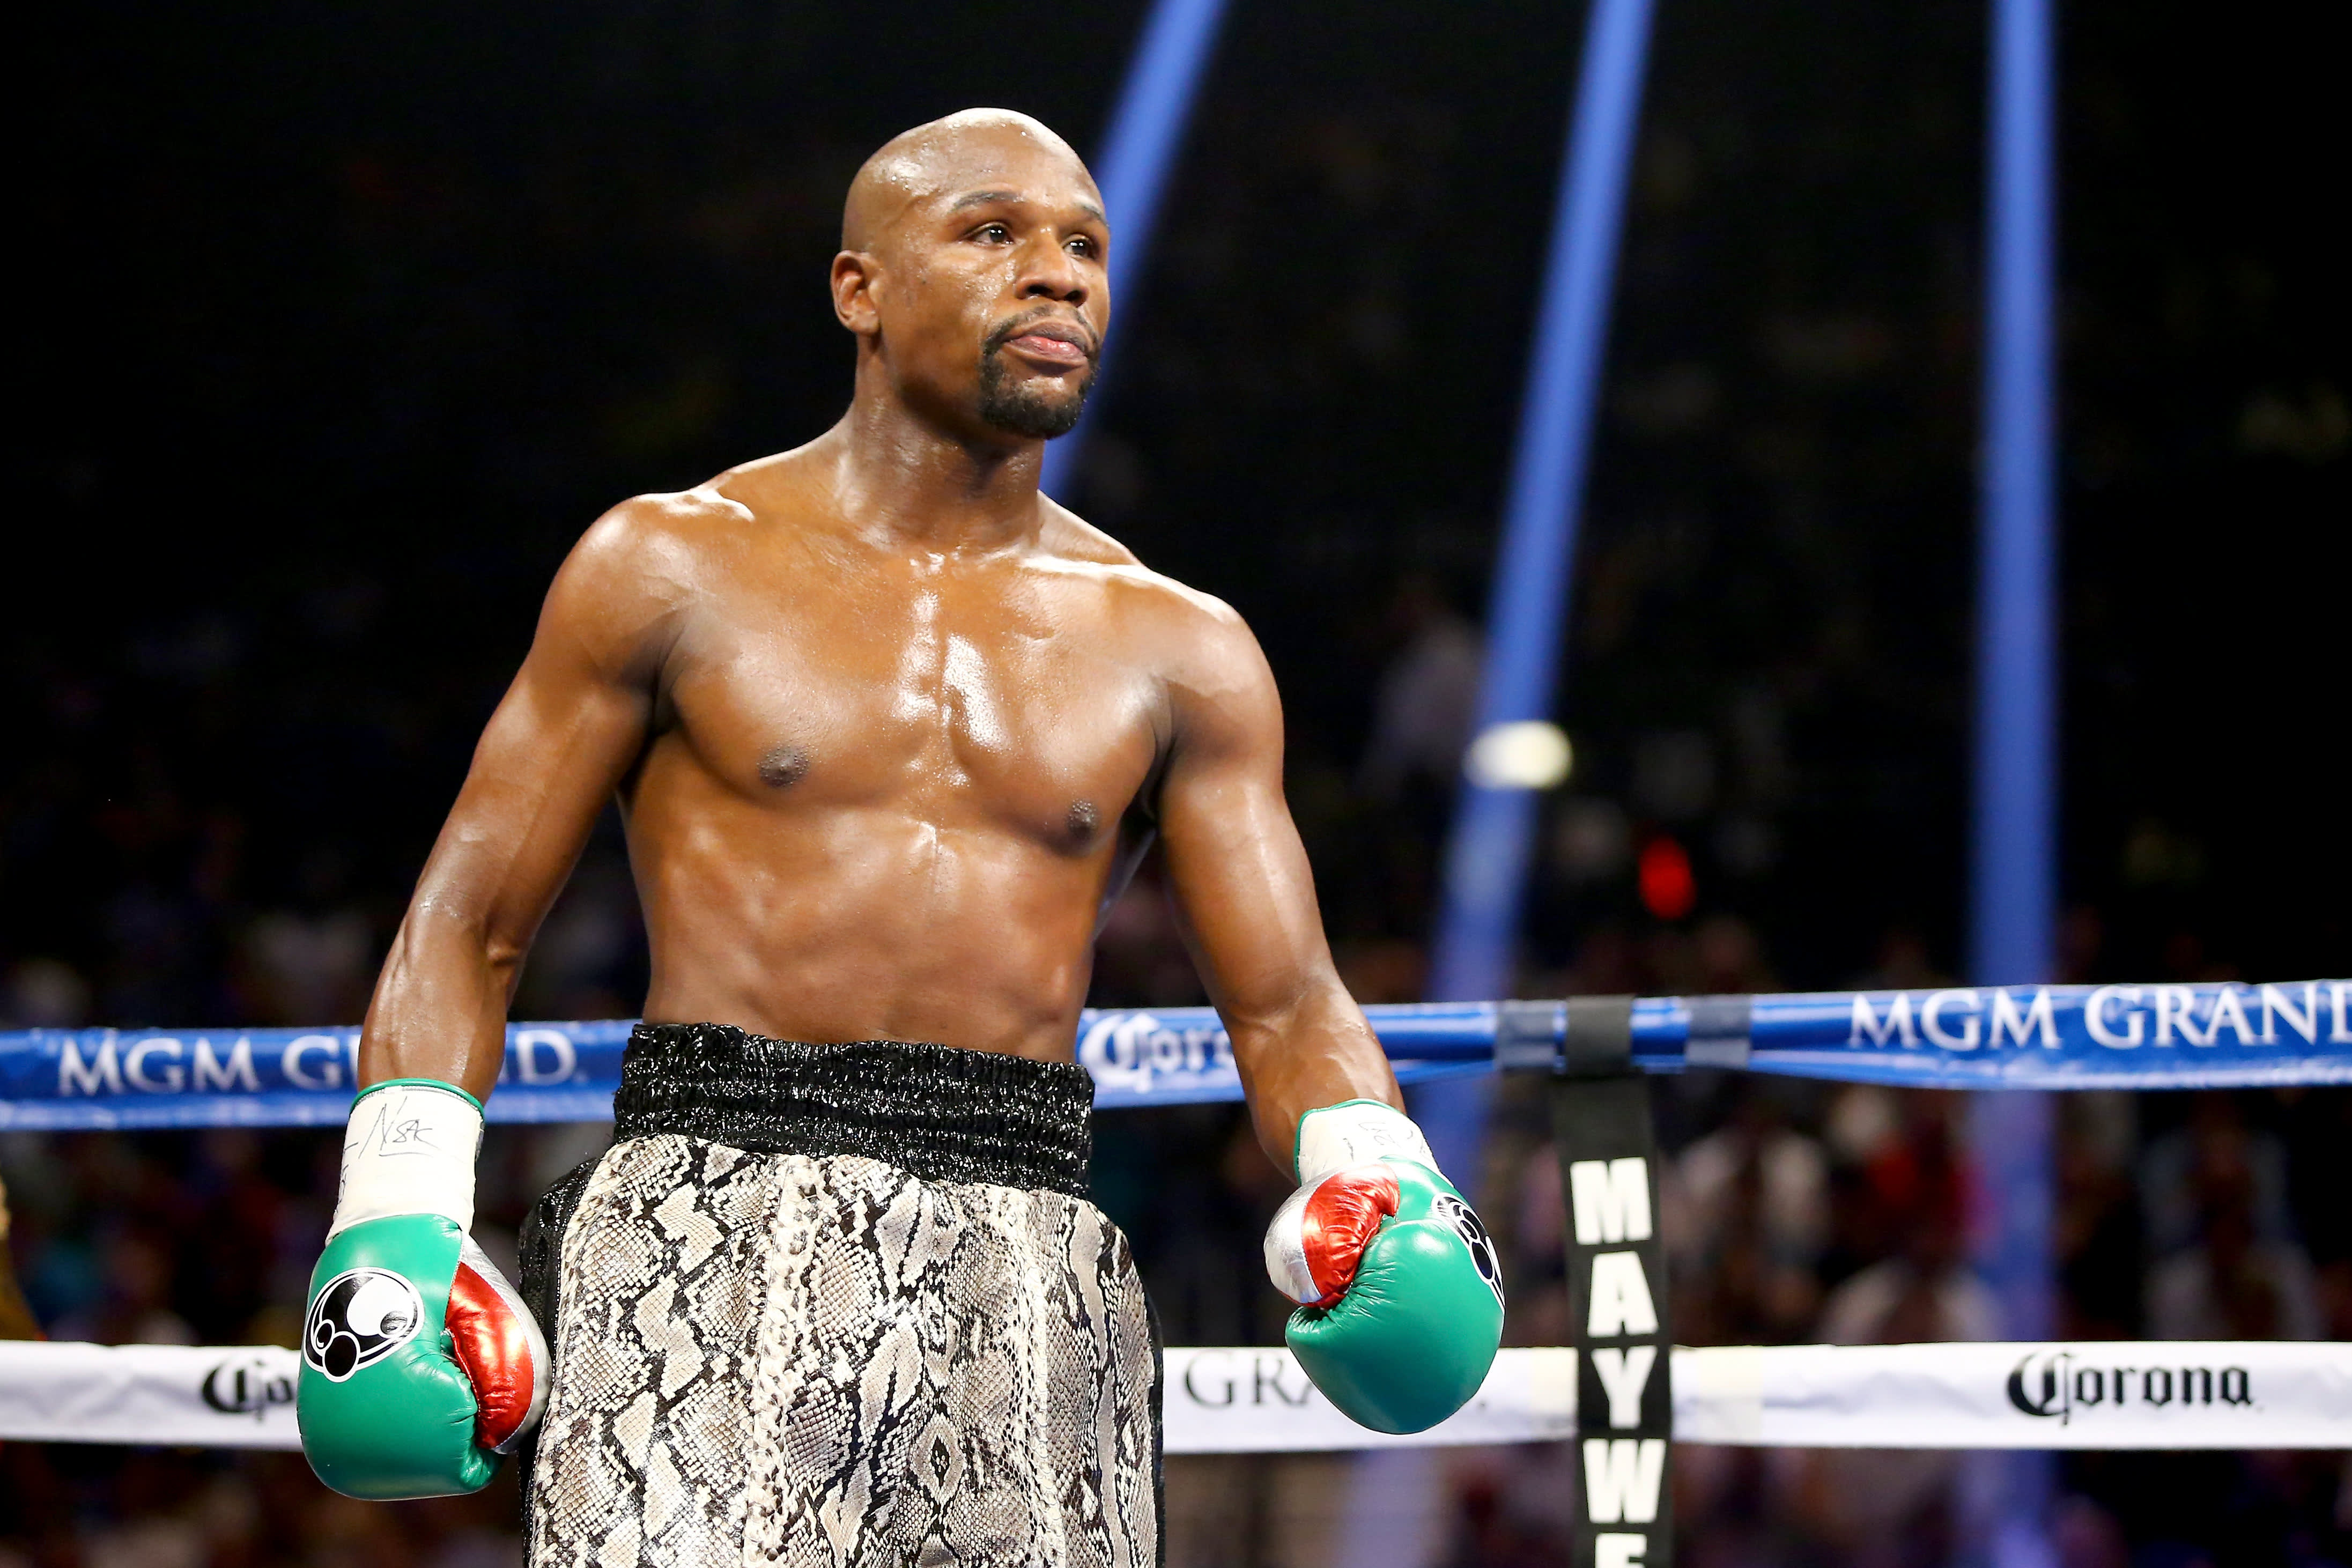 Here's who first saw Floyd Mayweather's potential